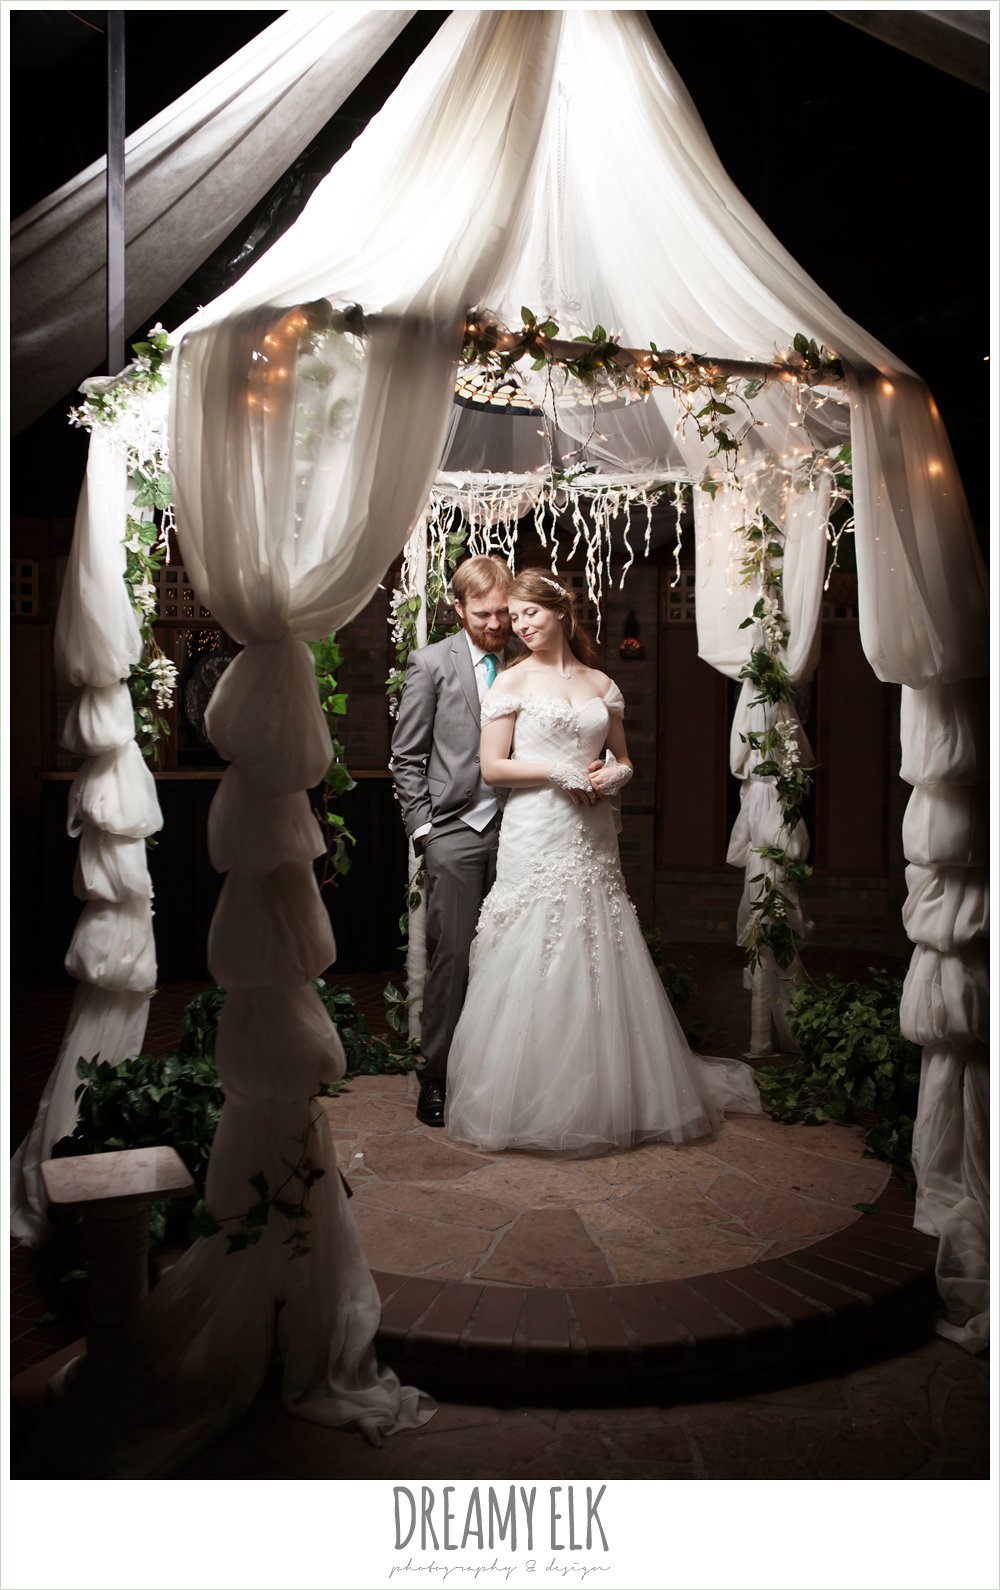 bride and groom under a gazebo, le jardin winter wedding {dreamy elk photography and design}